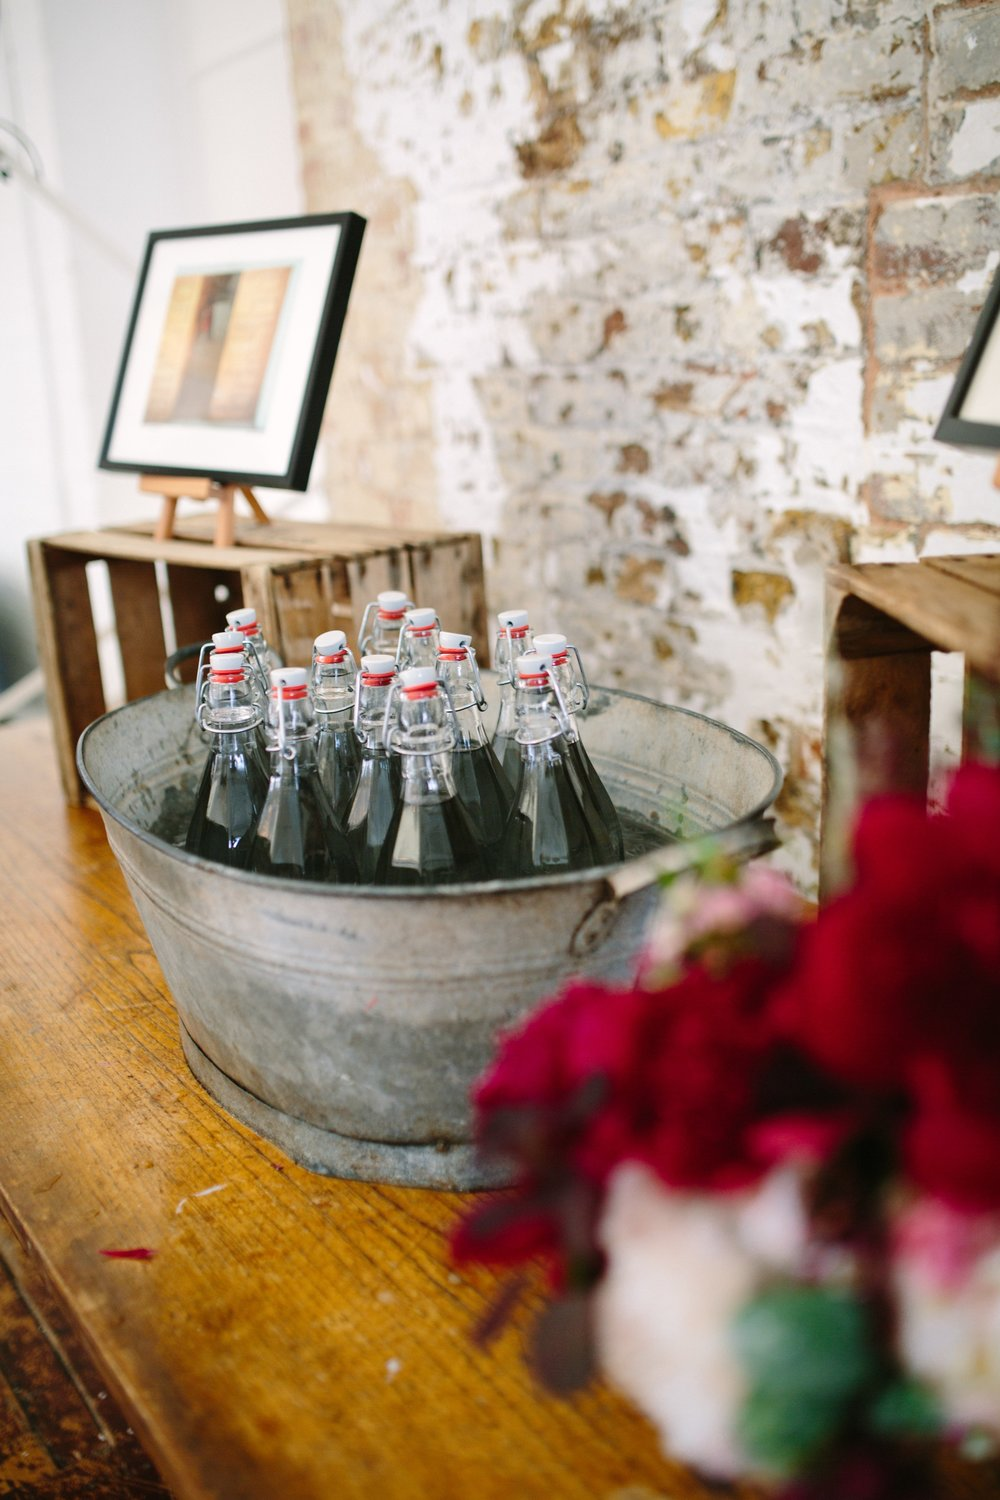 Warehouse Wedding Venue, Non-traditional wedding planner, London Wedding coordination, Event Bar, Bespoke weddings, Shoreditch Wedding, informal, Stylish, Event Planning, Unconventional